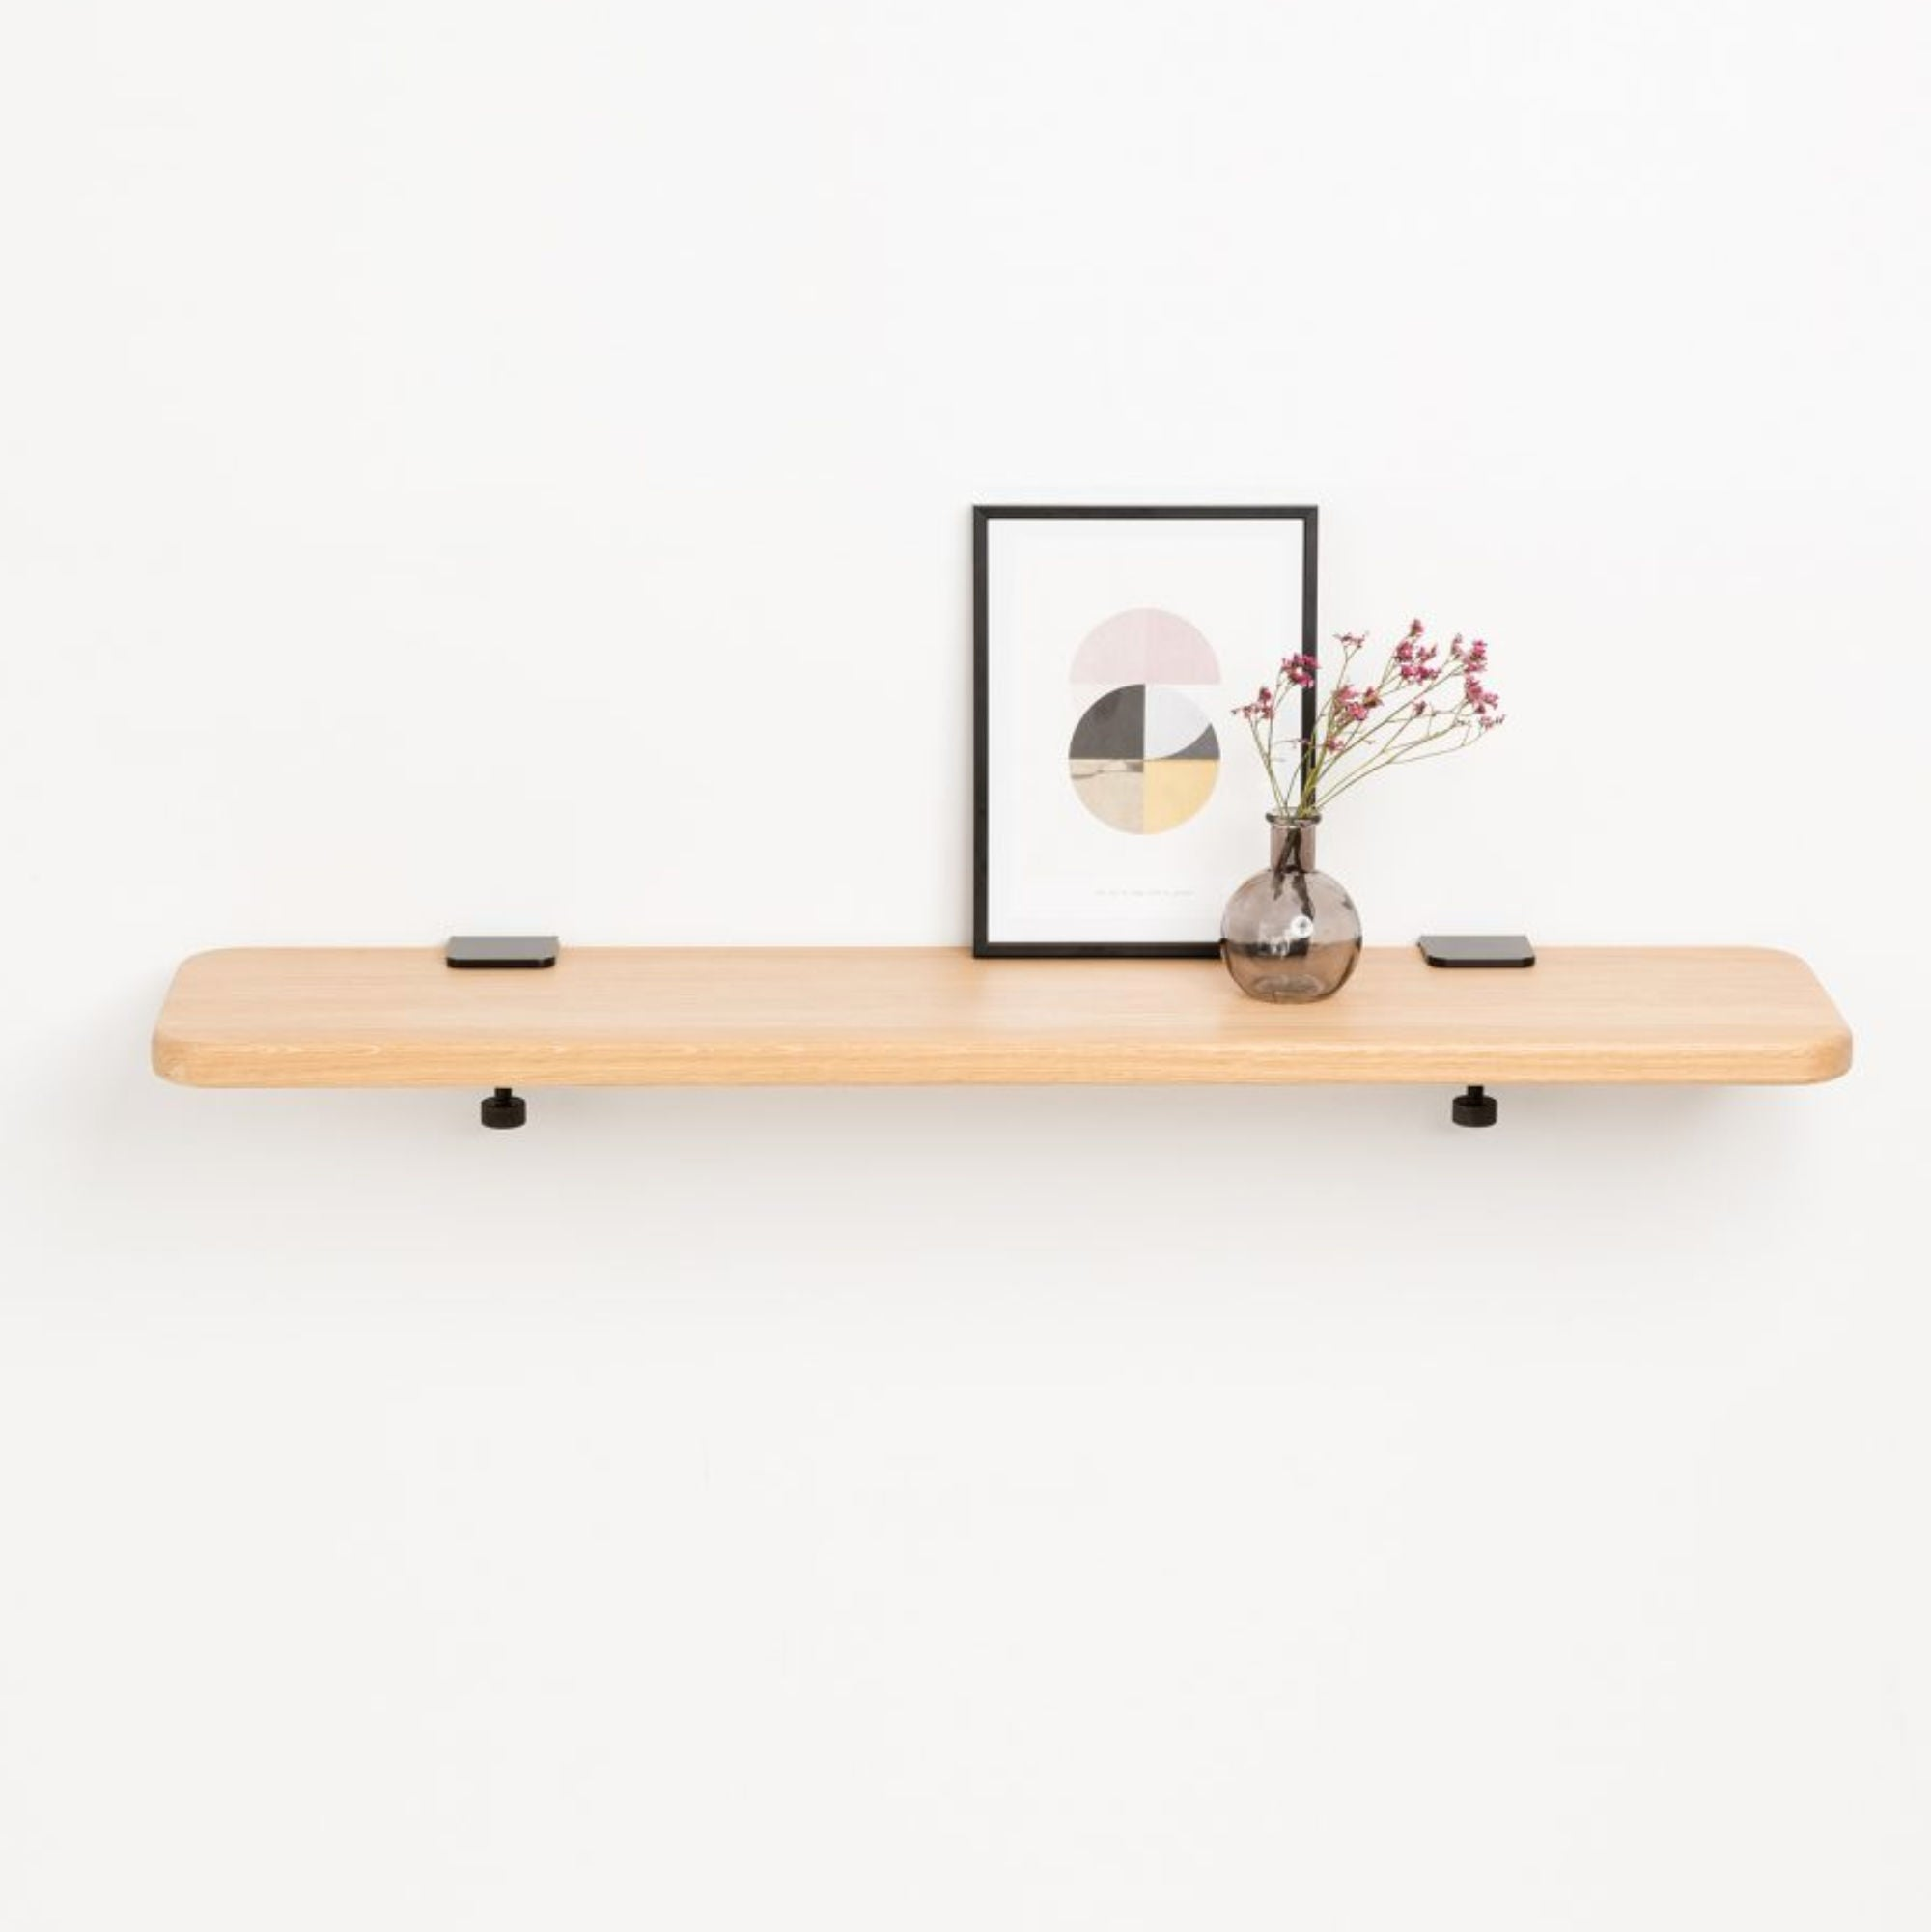 Tiptoe Solid oak shelf, 45 * 20cm